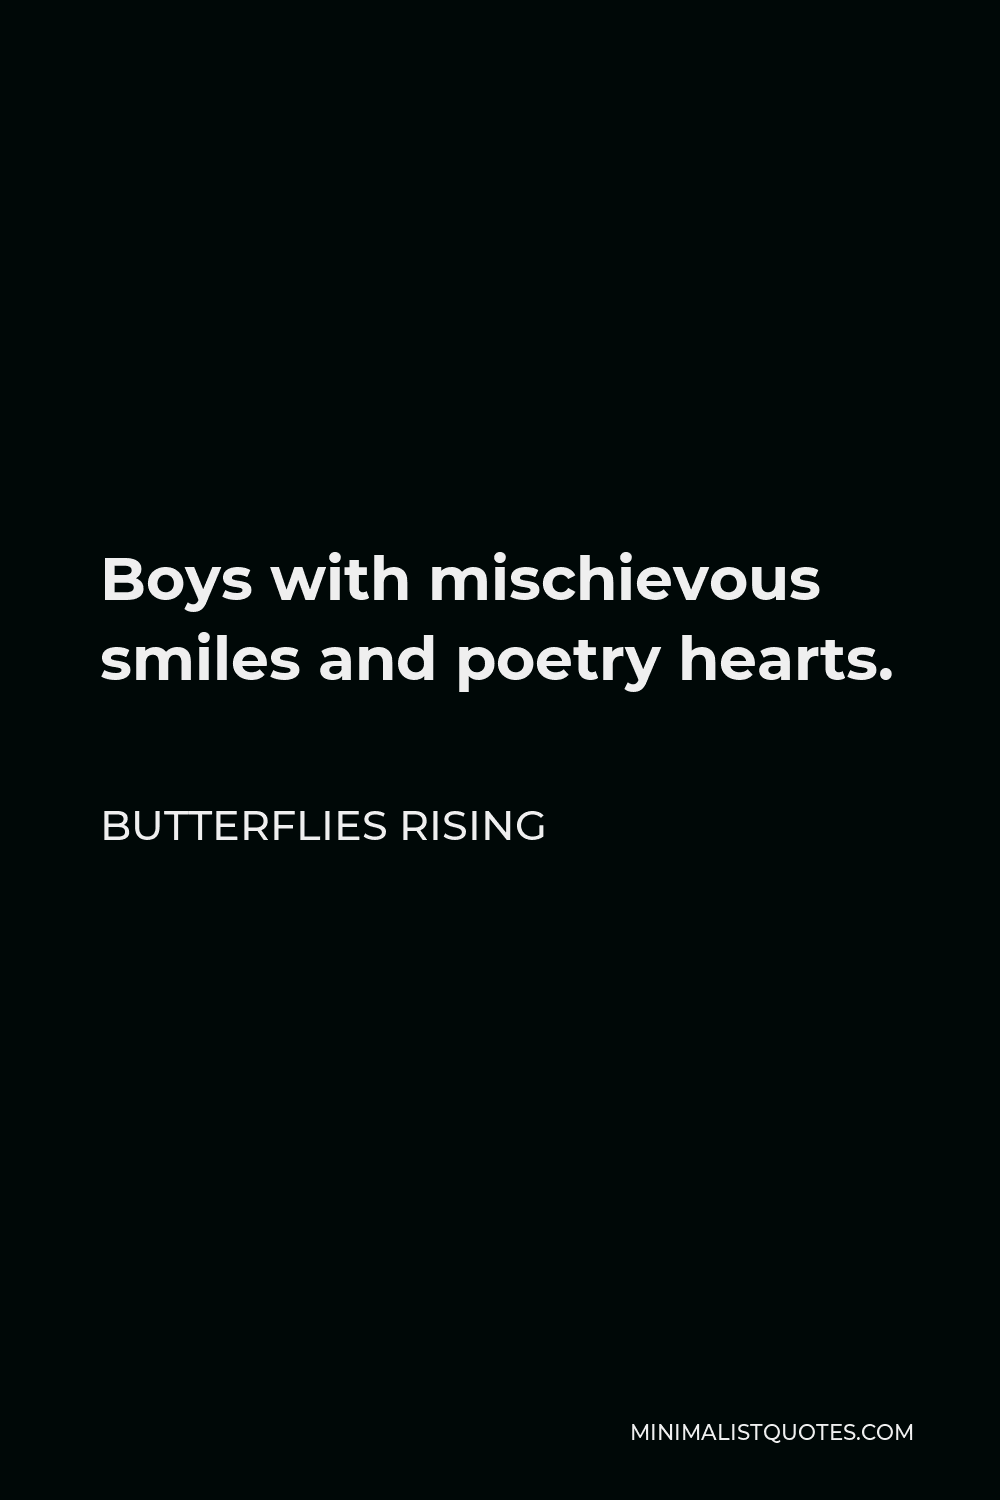 Butterflies Rising Quote - Boys with mischievous smiles and poetry hearts.